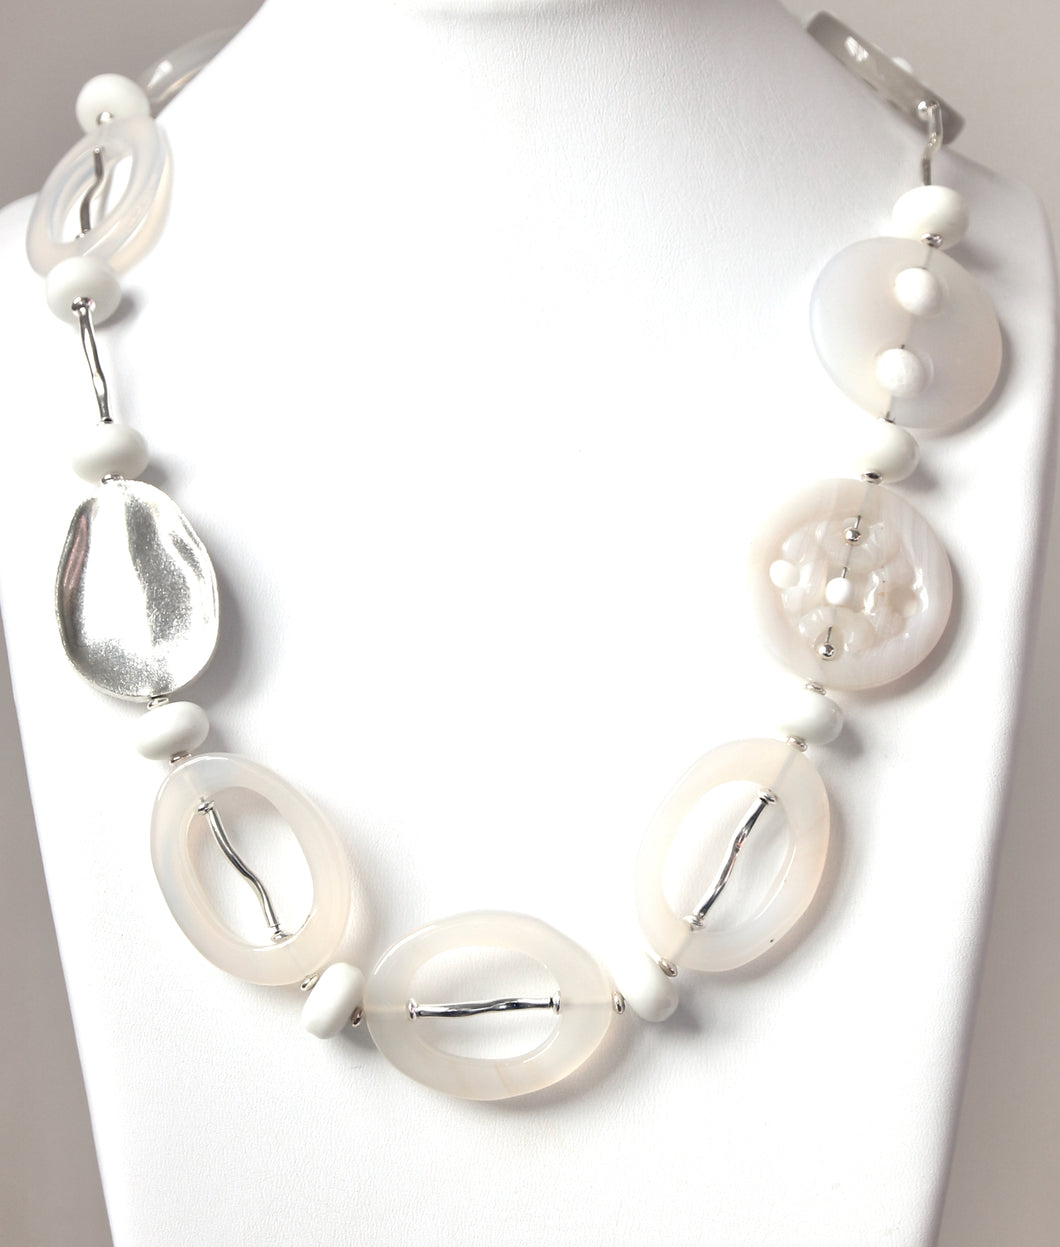 Australian Handmade White Necklace with White Agate White Jade and Sterling Silver